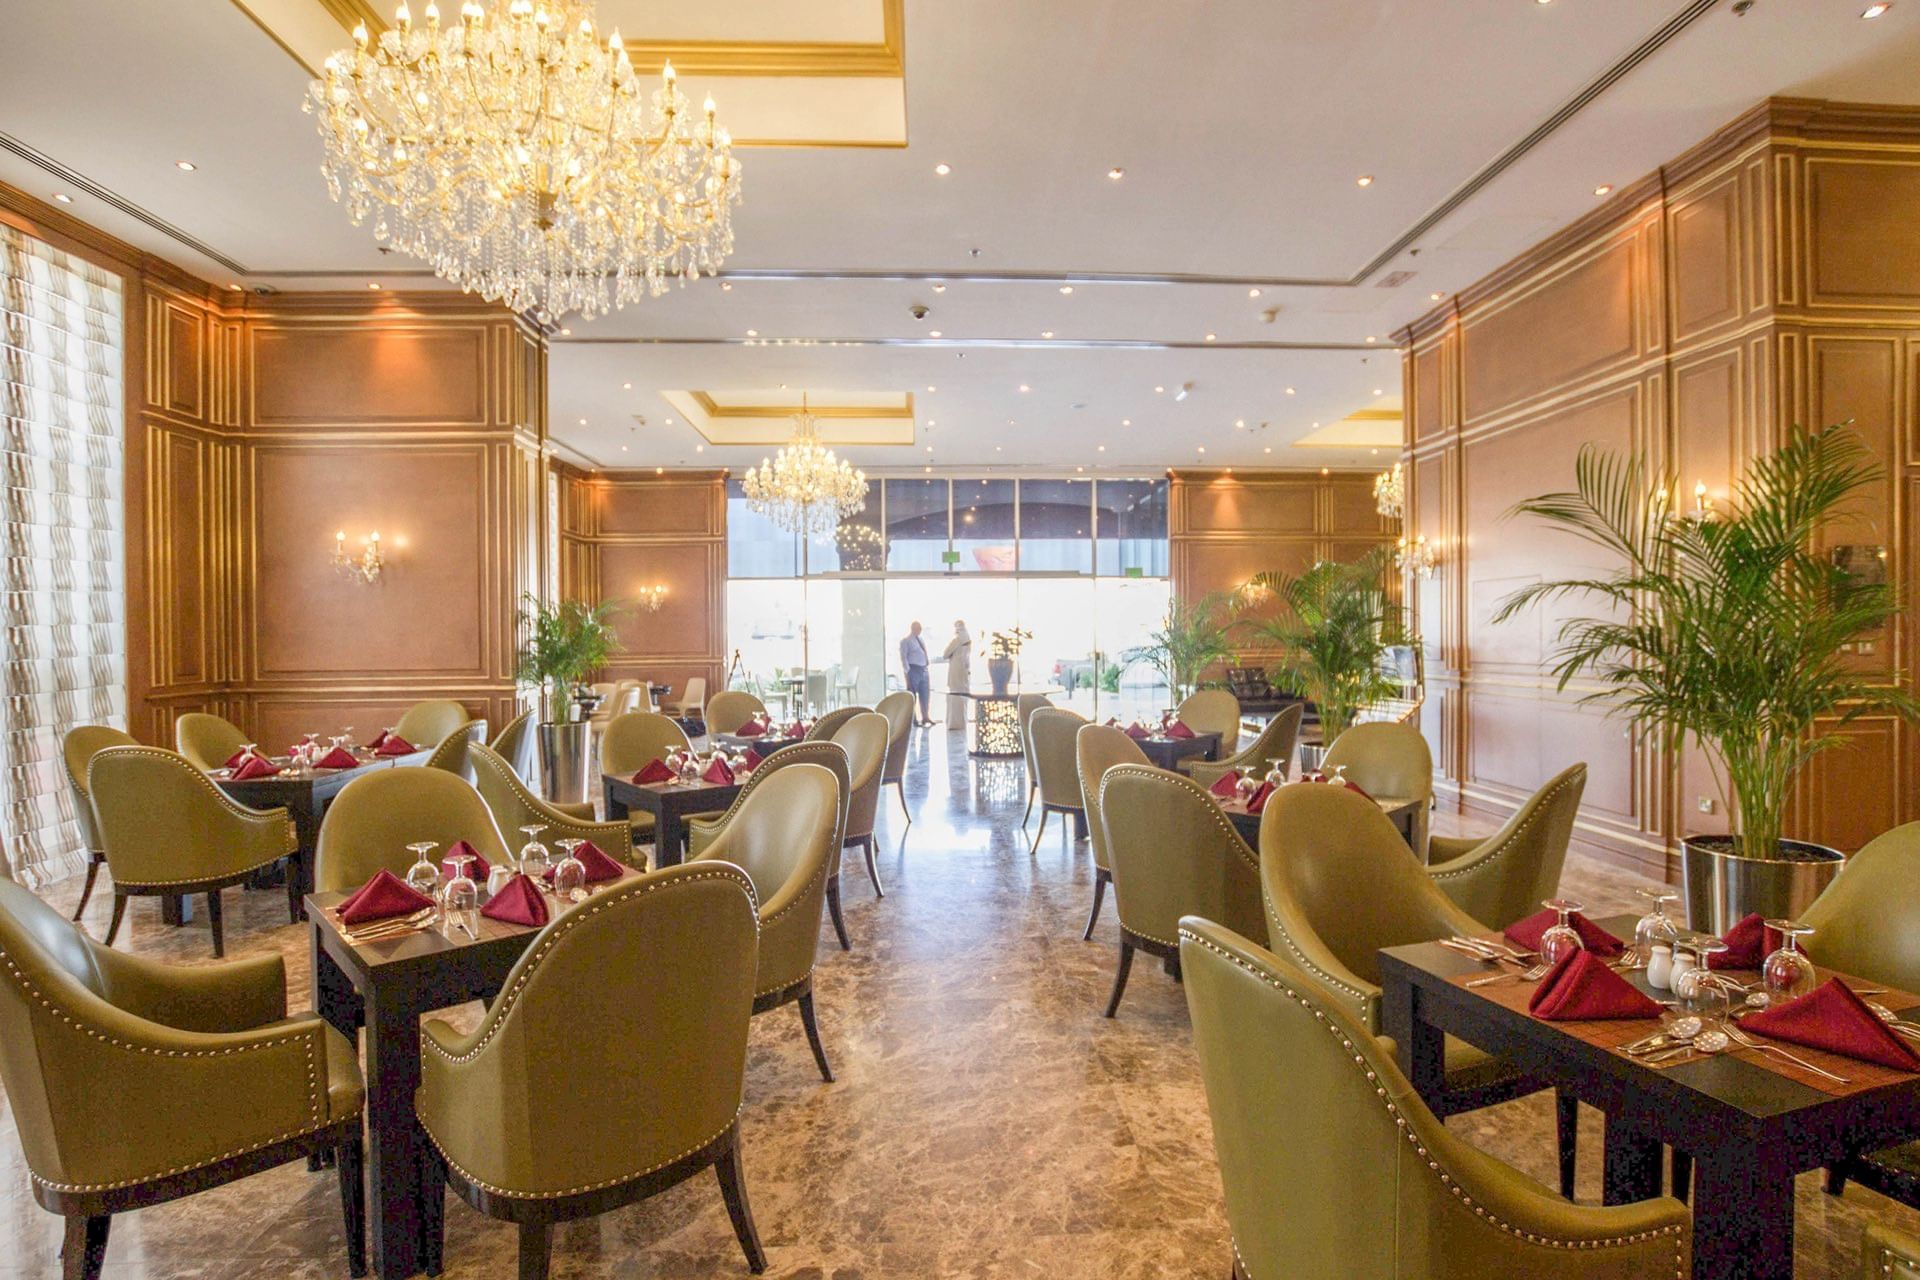 Dining at Strato Hotel by Warwick